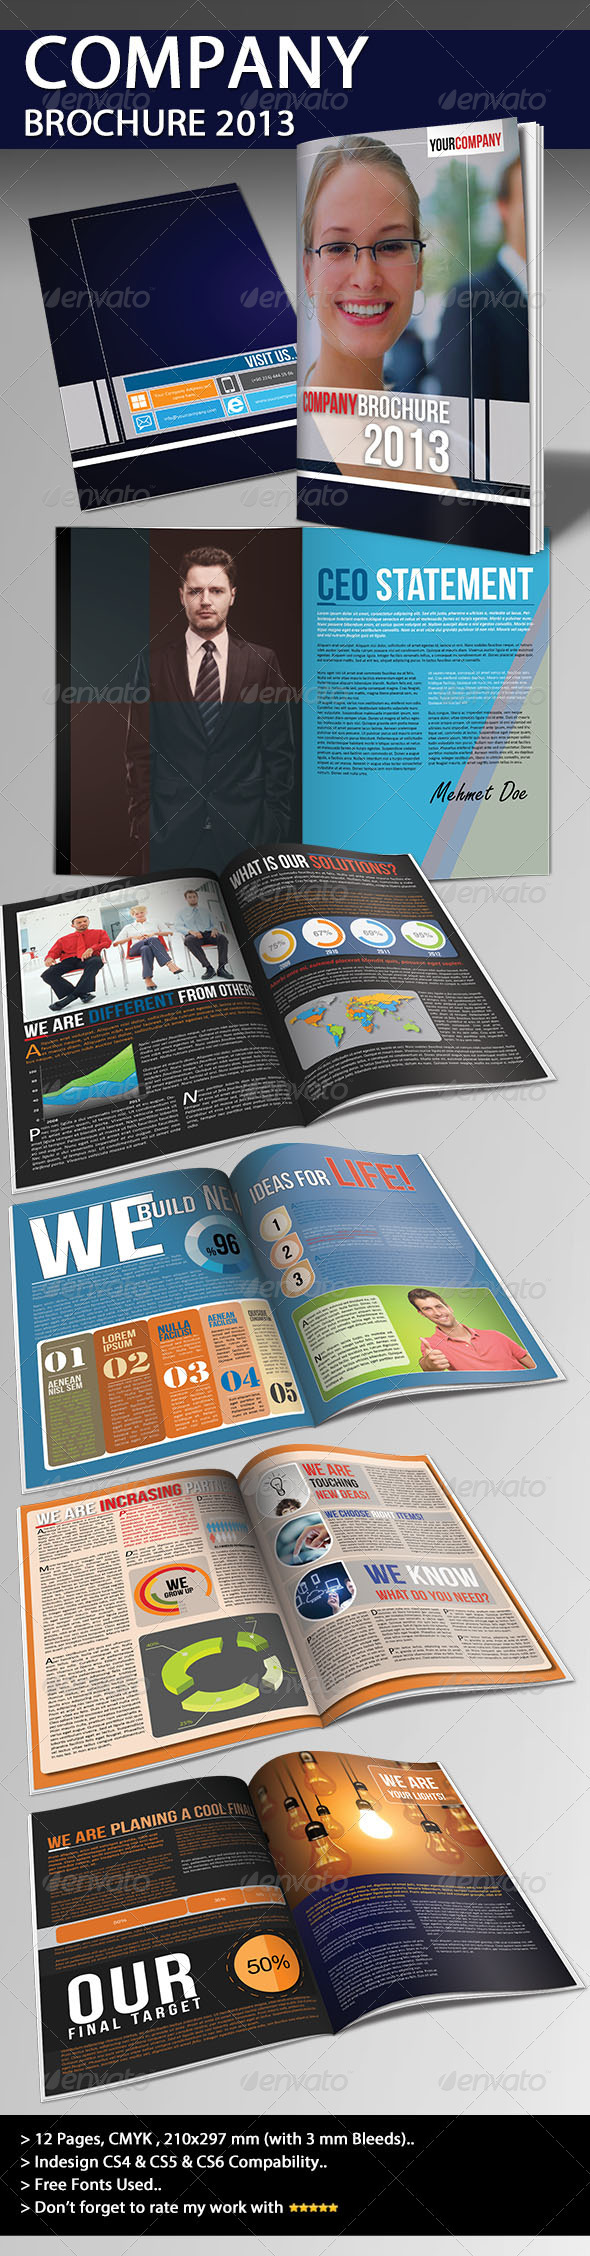 GraphicRiver Company Brochure 2013 Part 02 3815039